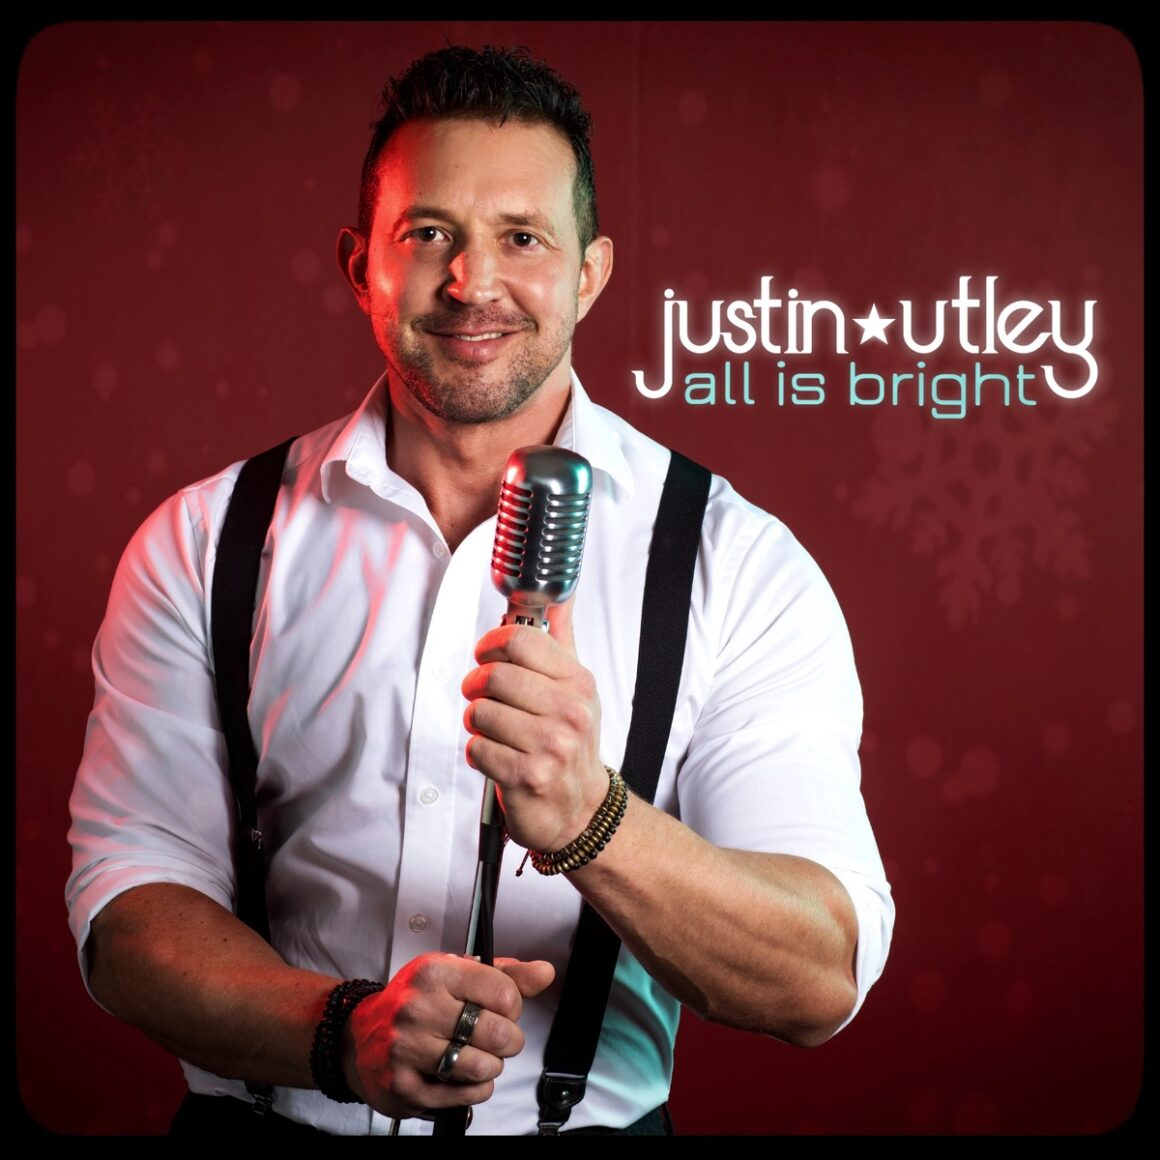 Justin Utley All Is Bright